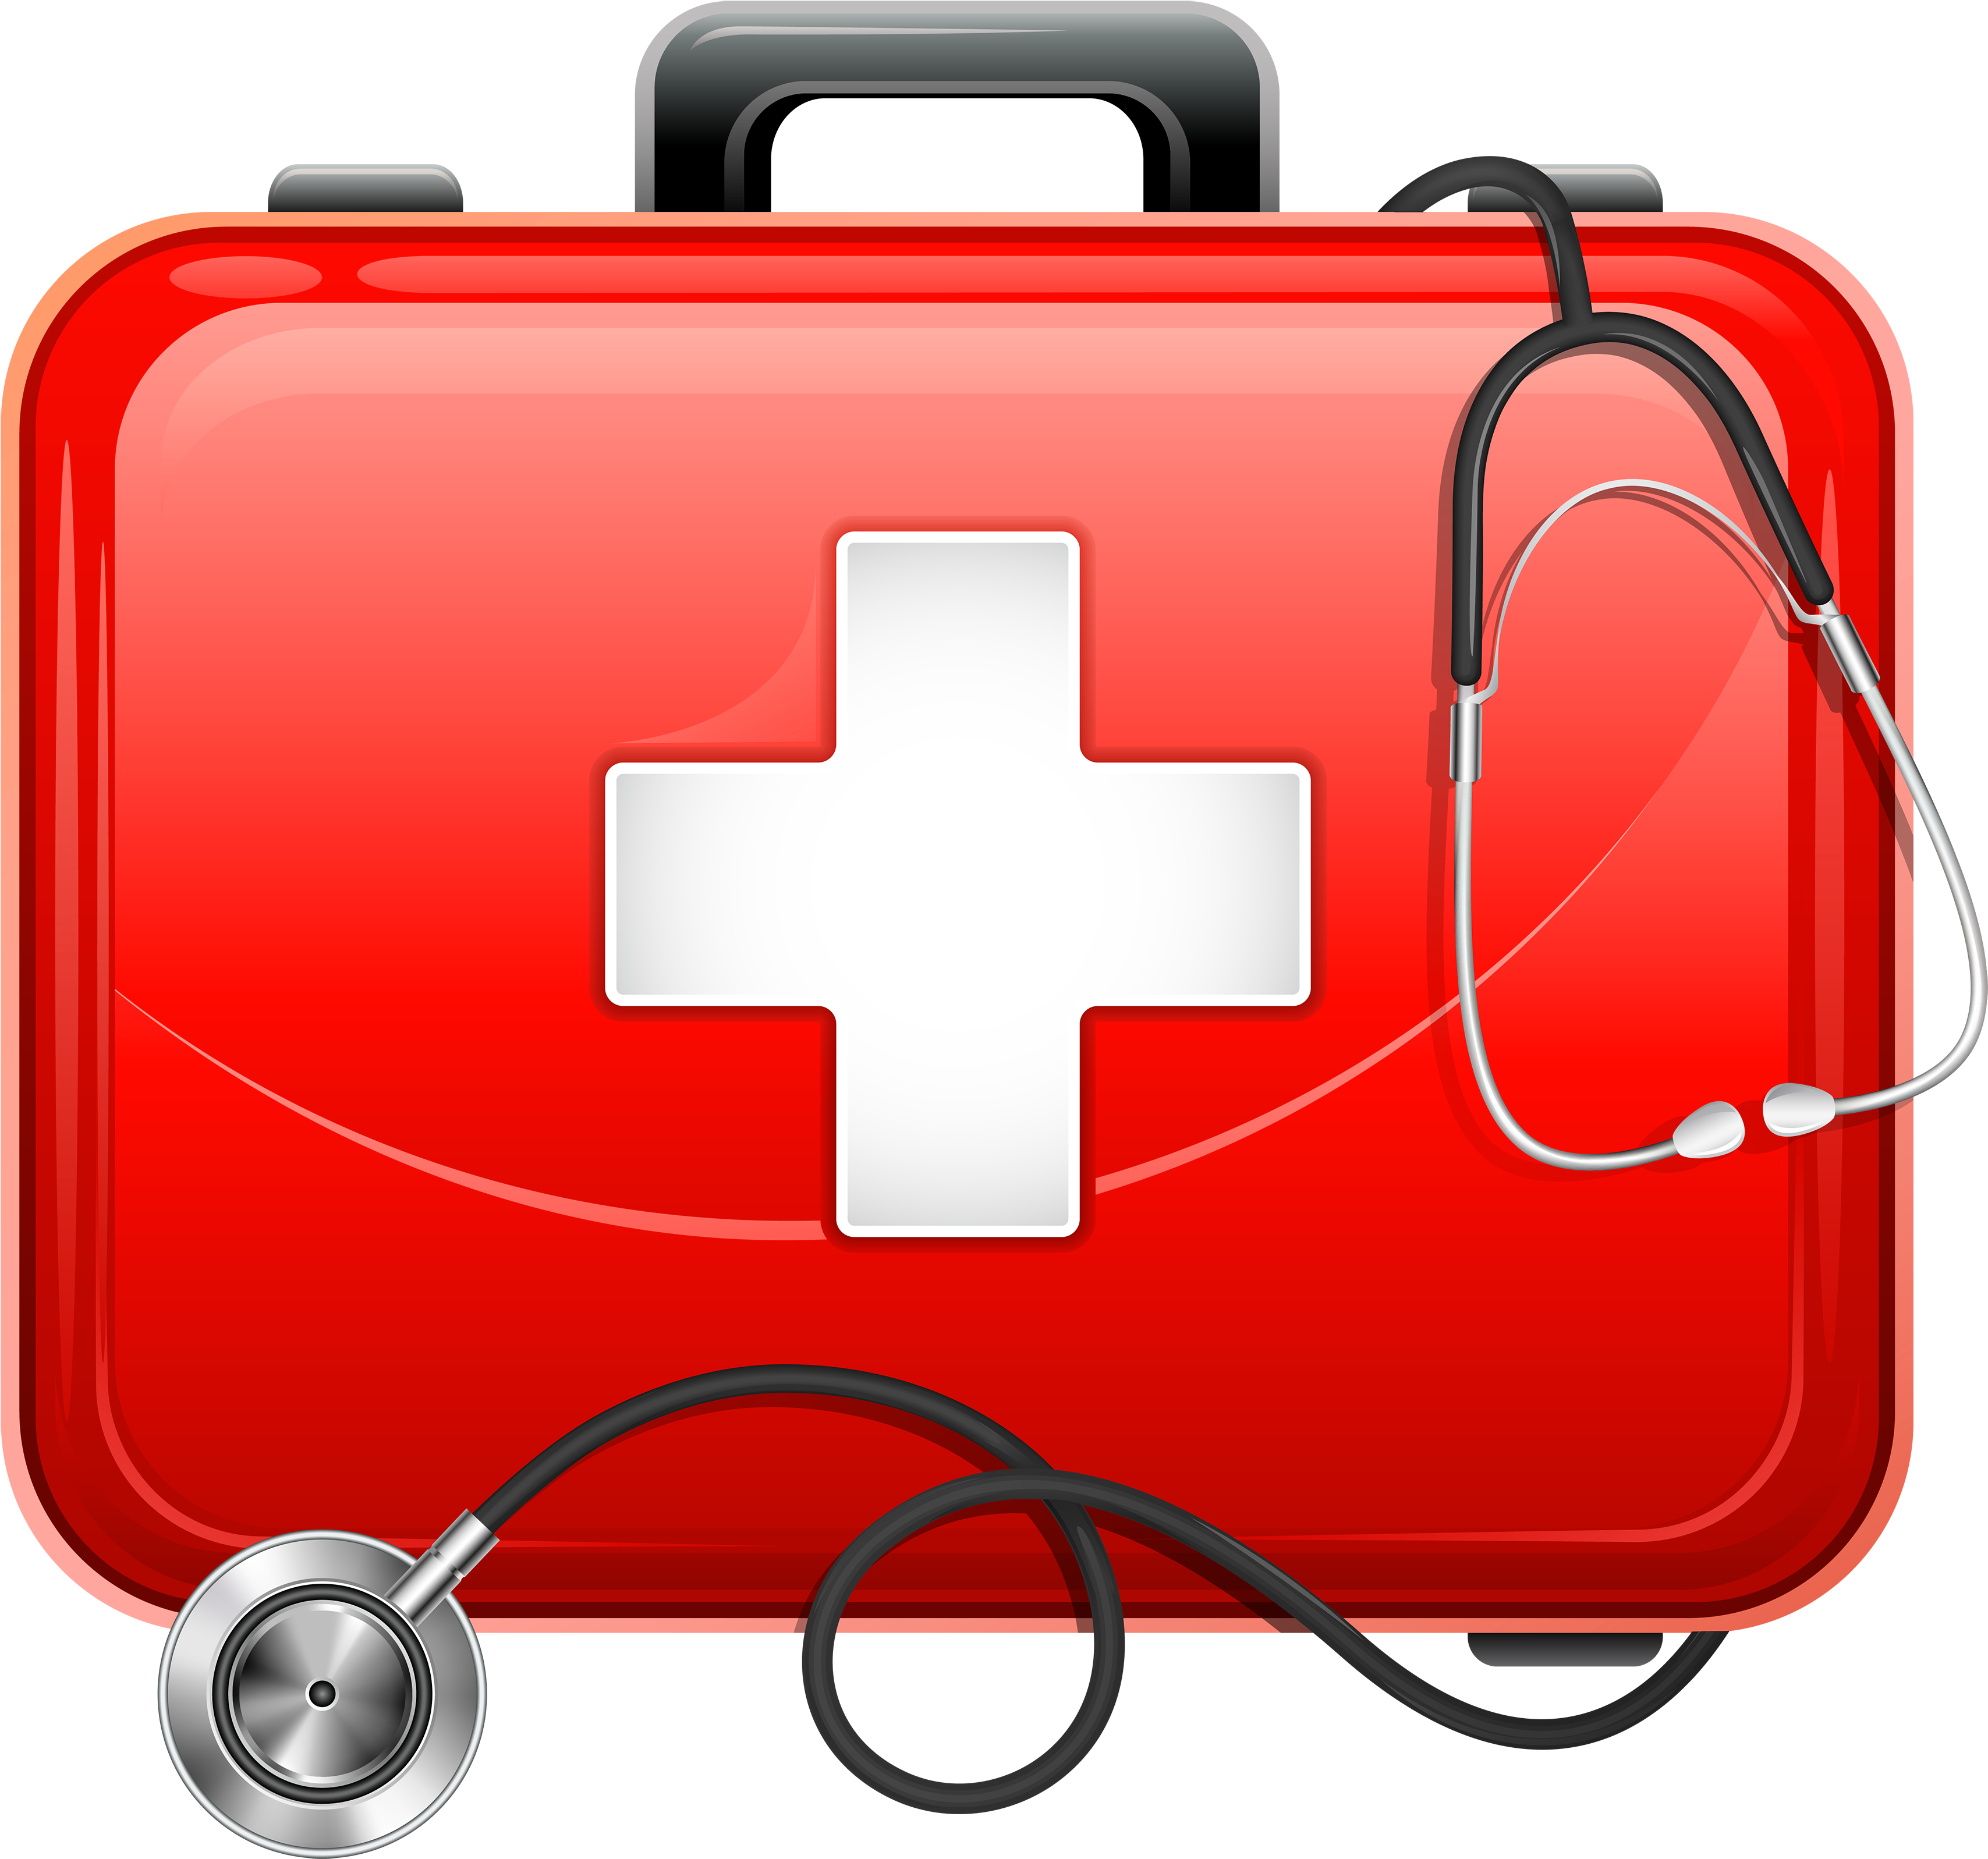 Transparent stethoscope first aid. Download medical bag and